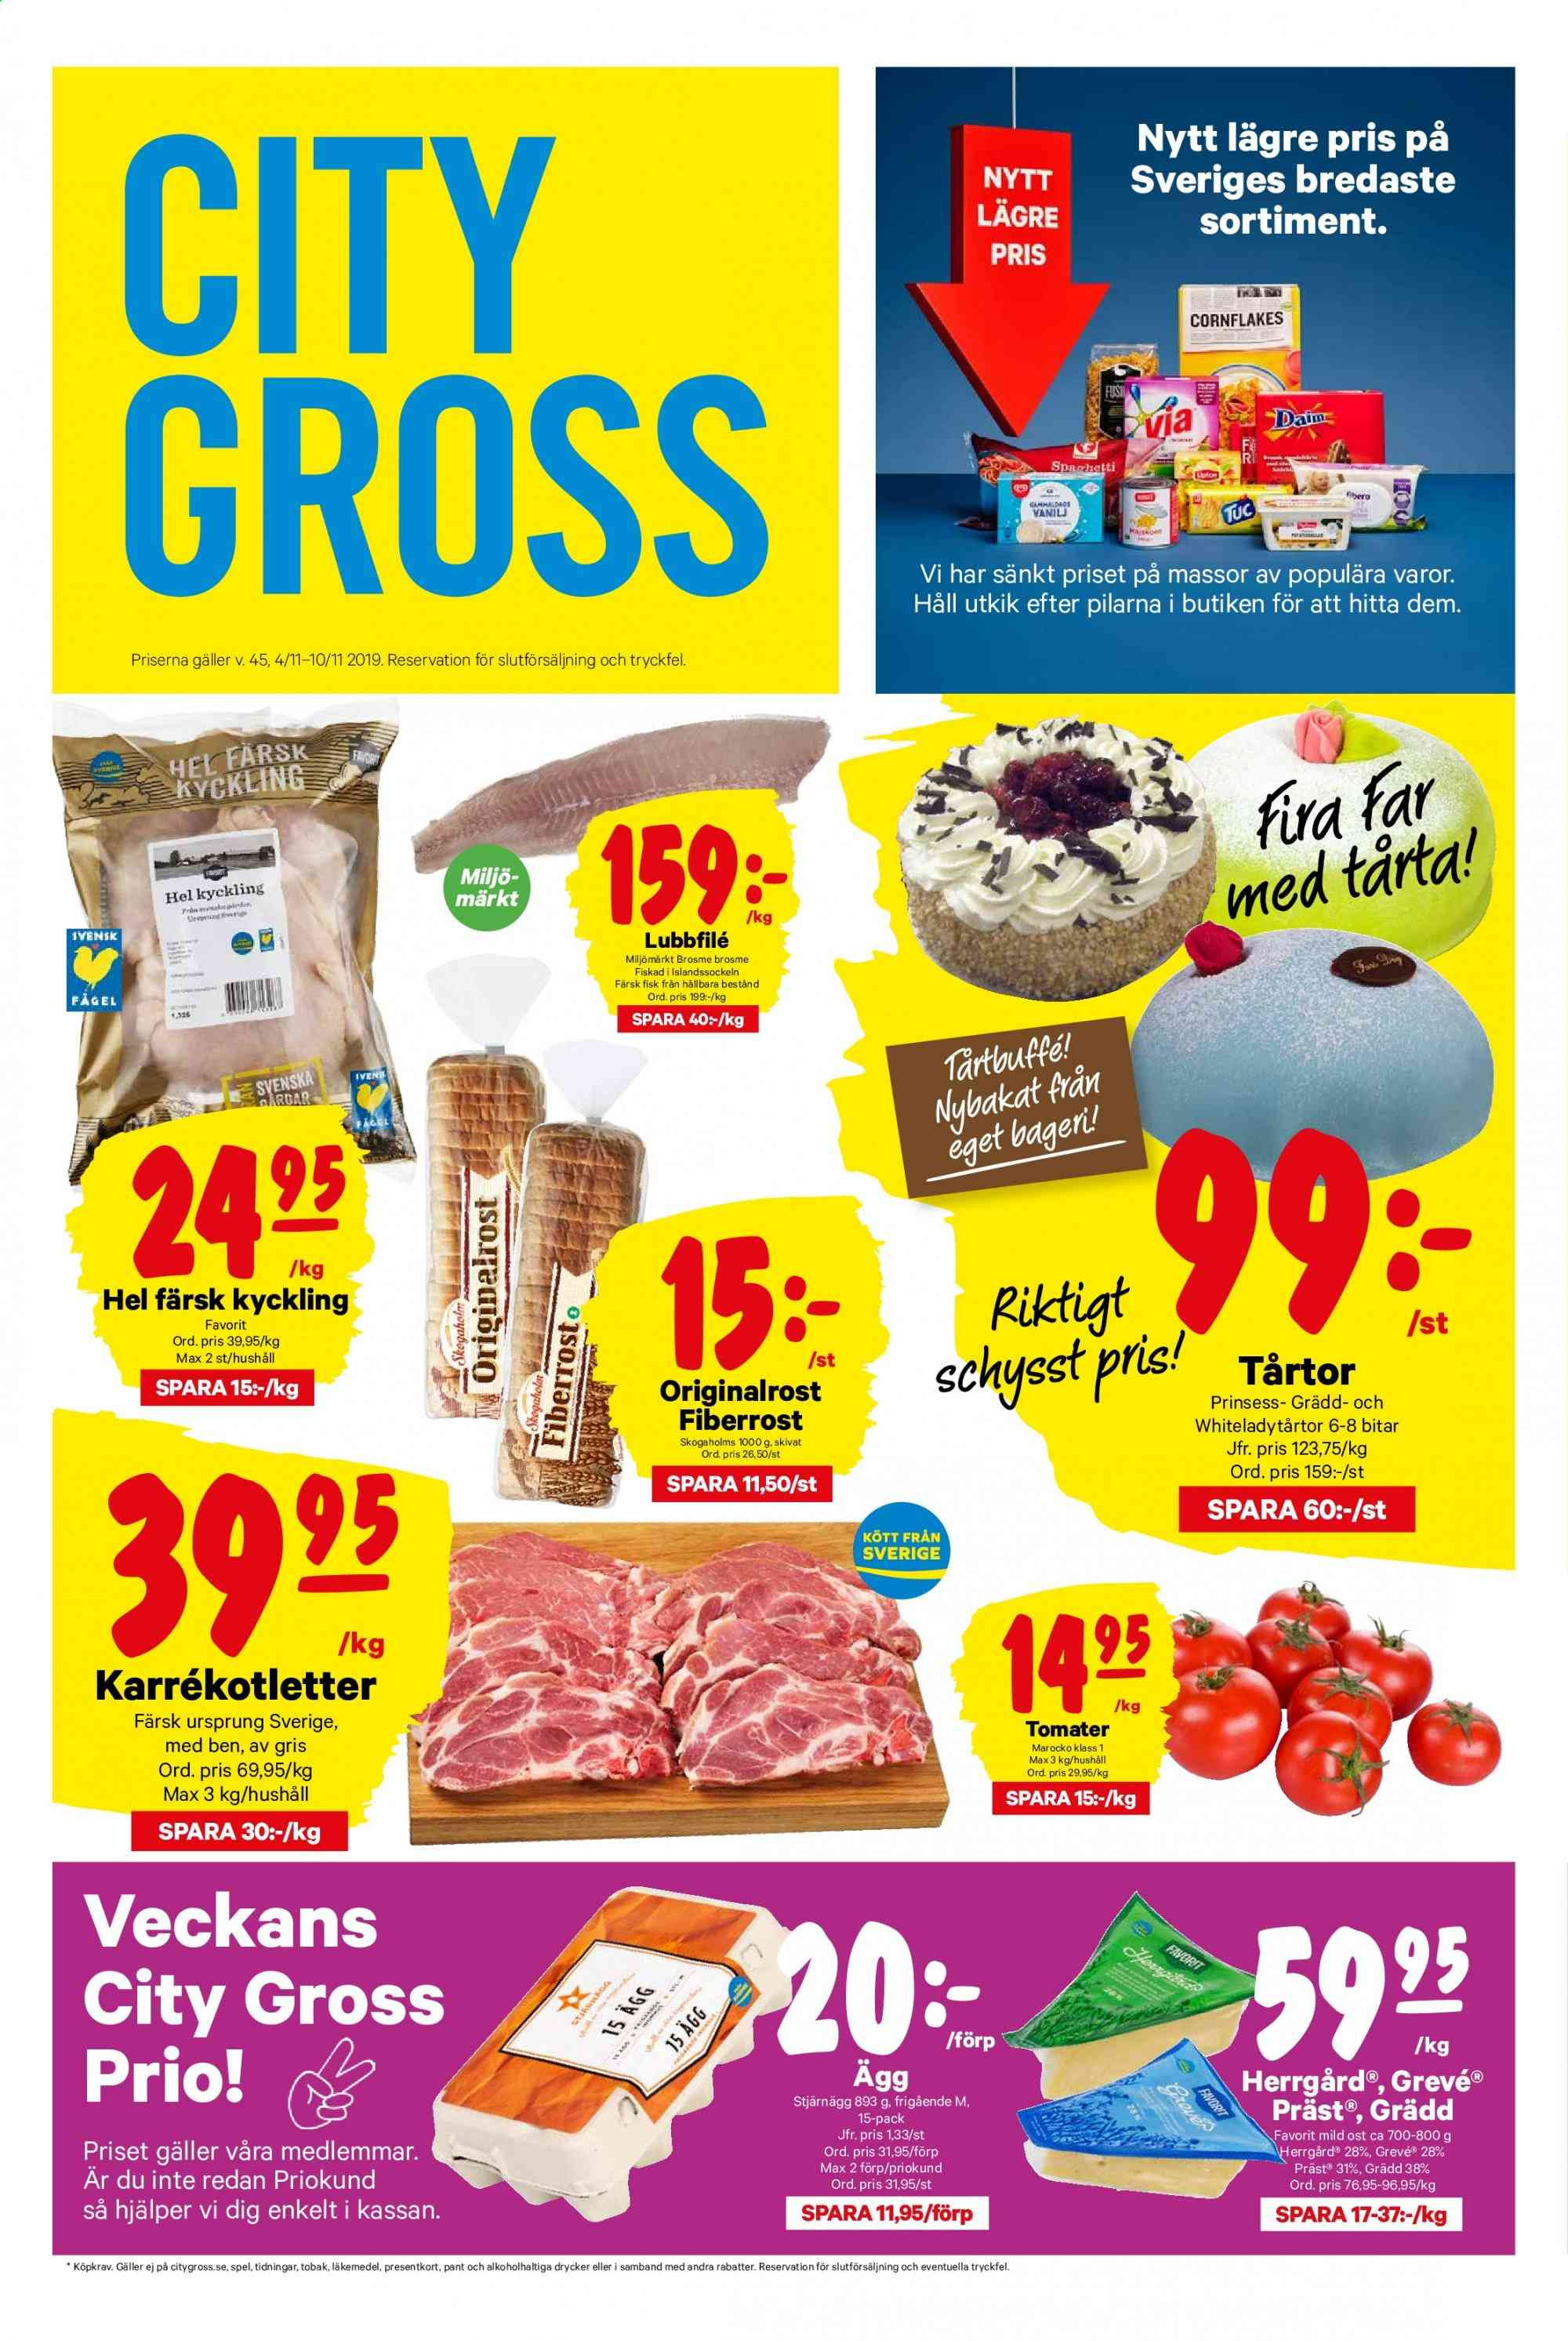 City Gross reklamblad - 4/11 2019 - 10/11 2019. Sida 1.